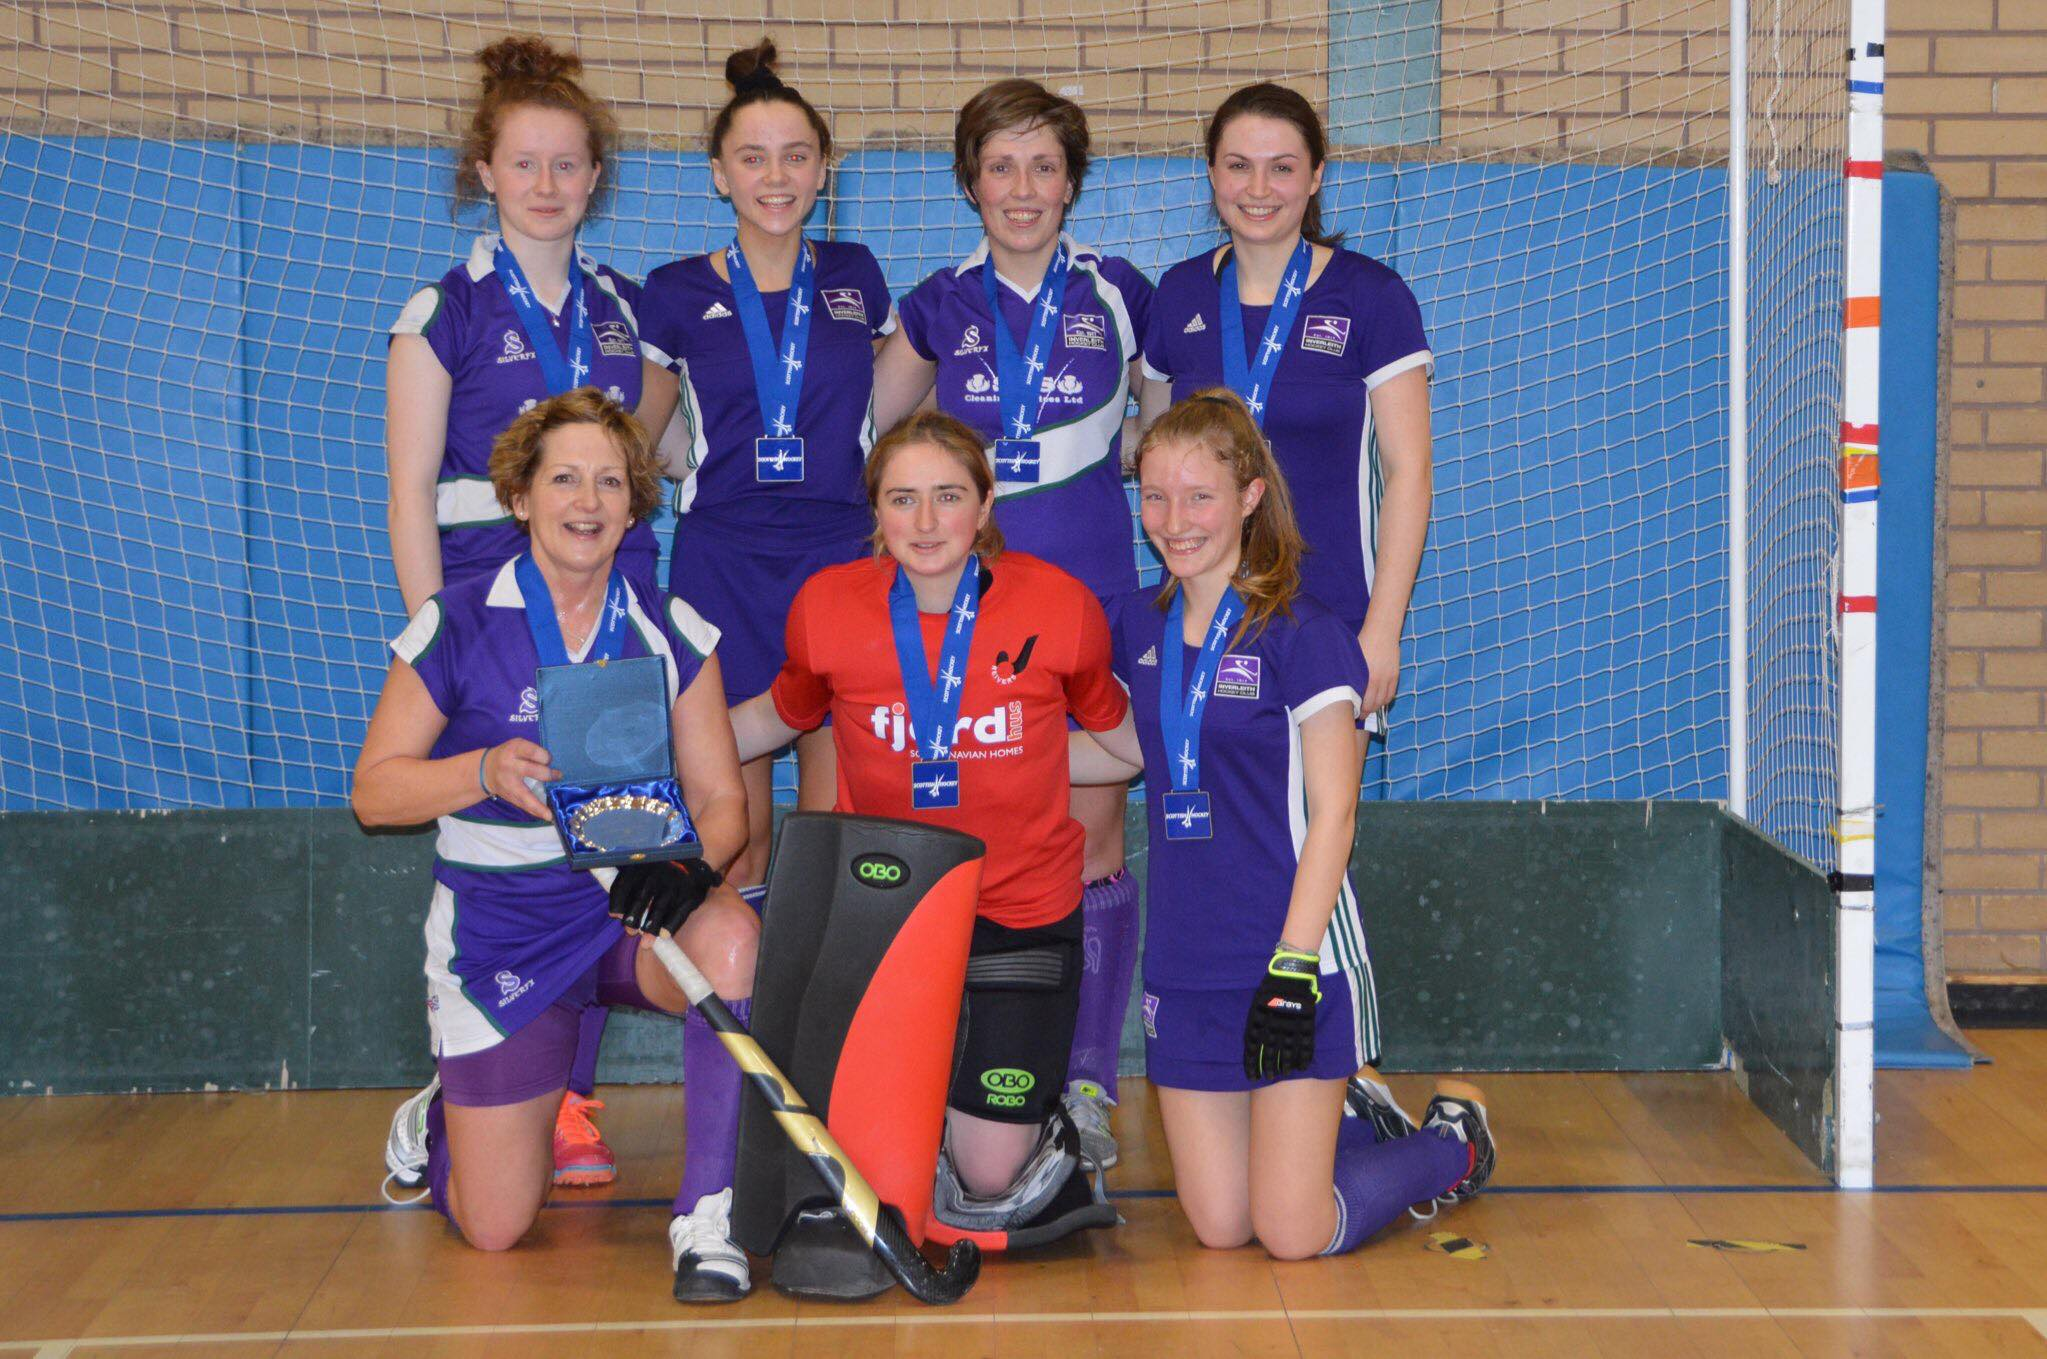 Inverleith Ladies 2s Indoor Hockey Team